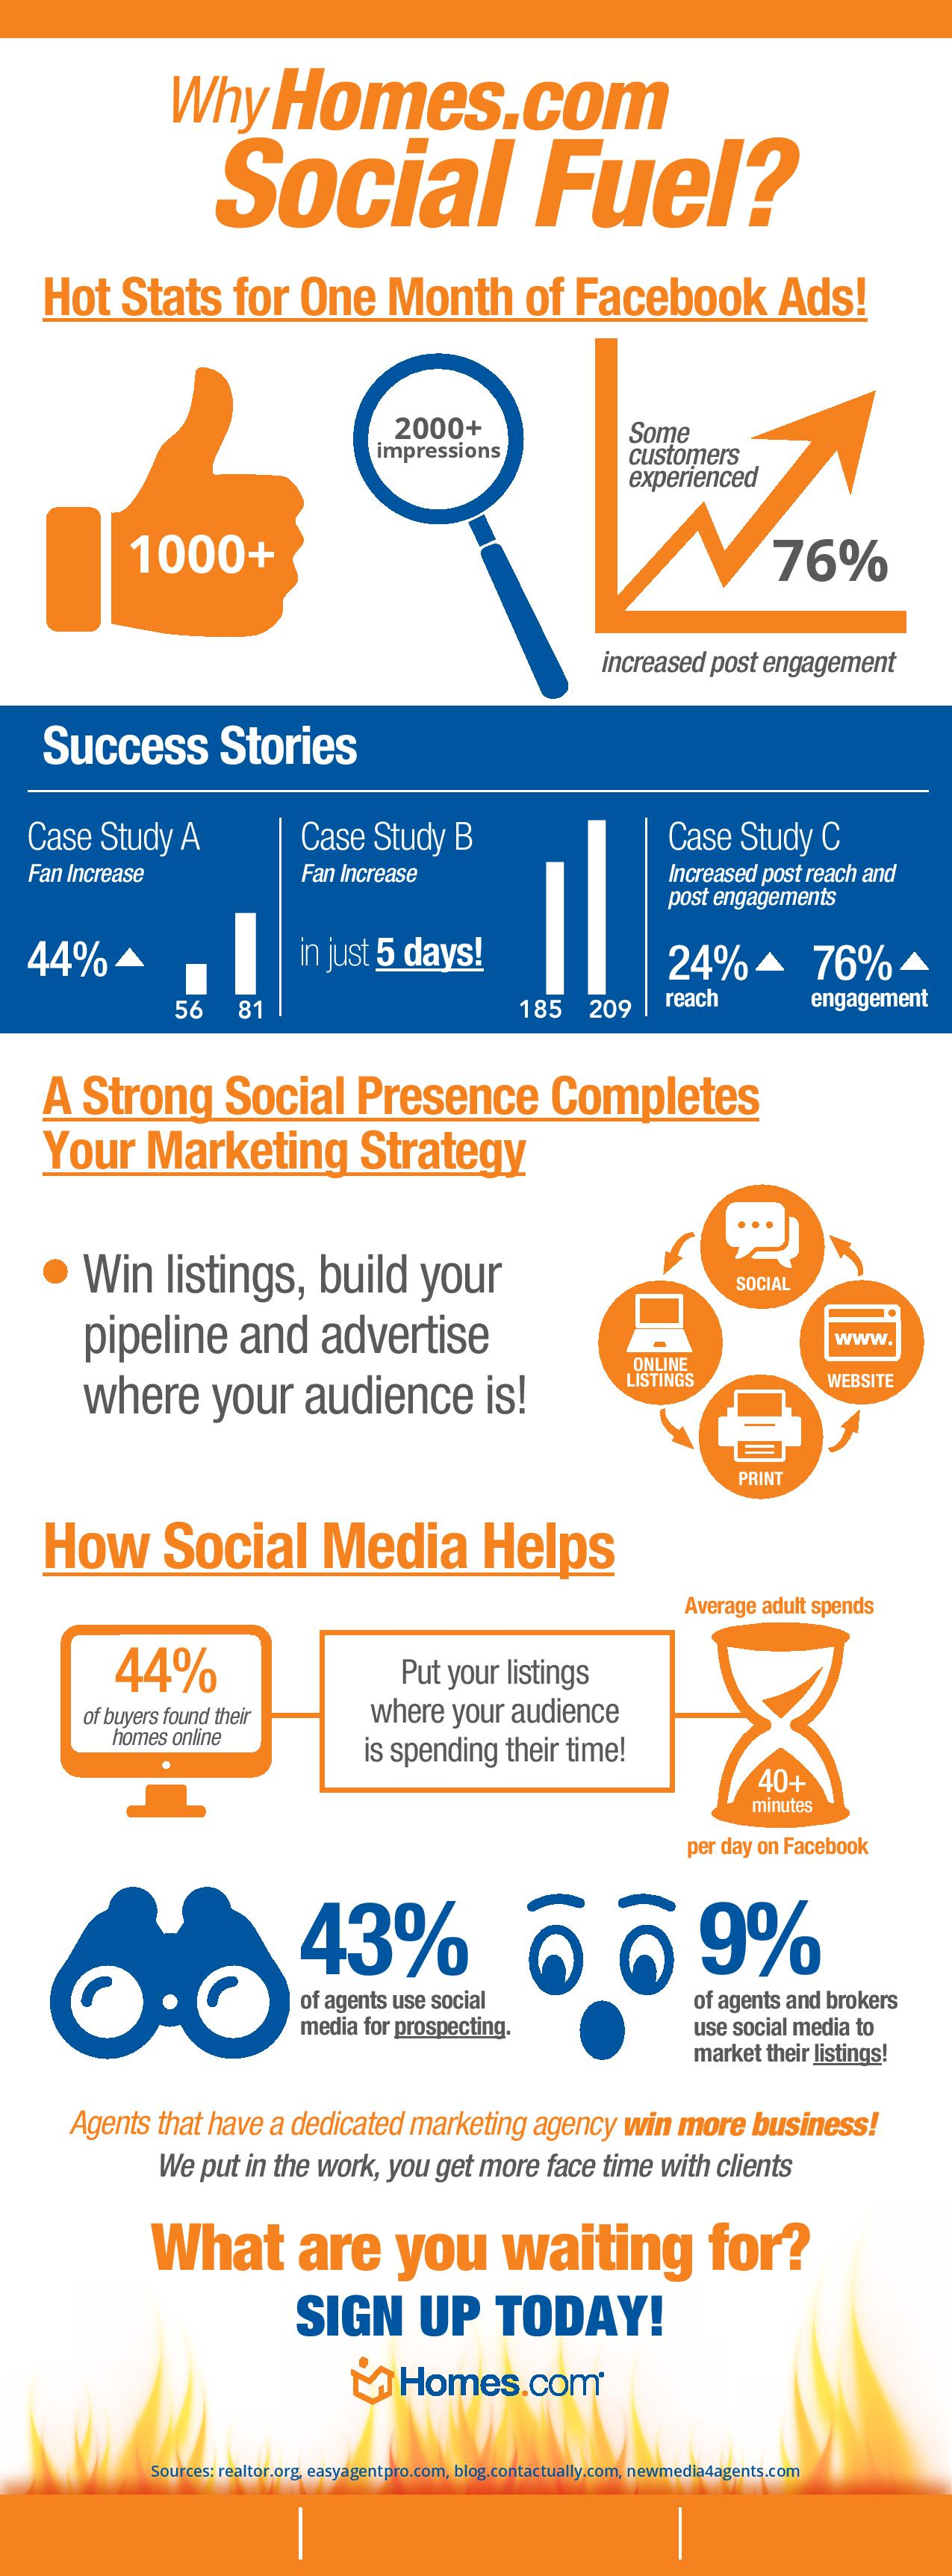 HDC_Social_Fuel_Success_Infographic_v4_3506-page-001